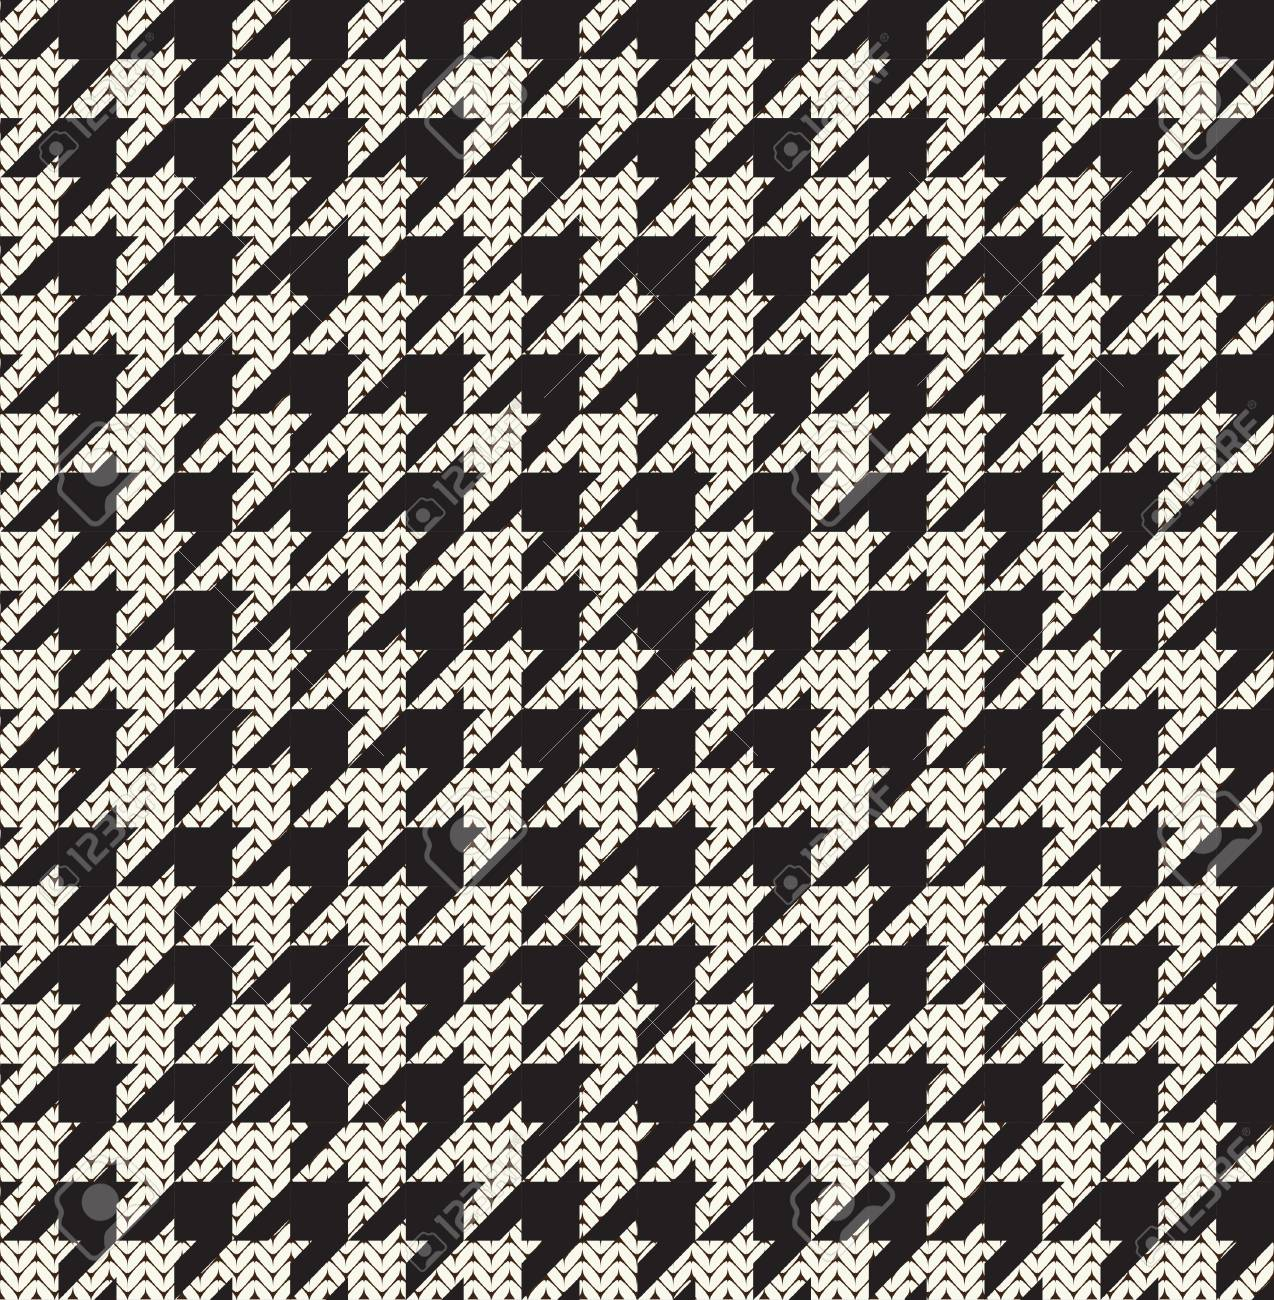 Knitted Houndstooth Seamless Pattern In Black And White. Royalty ...